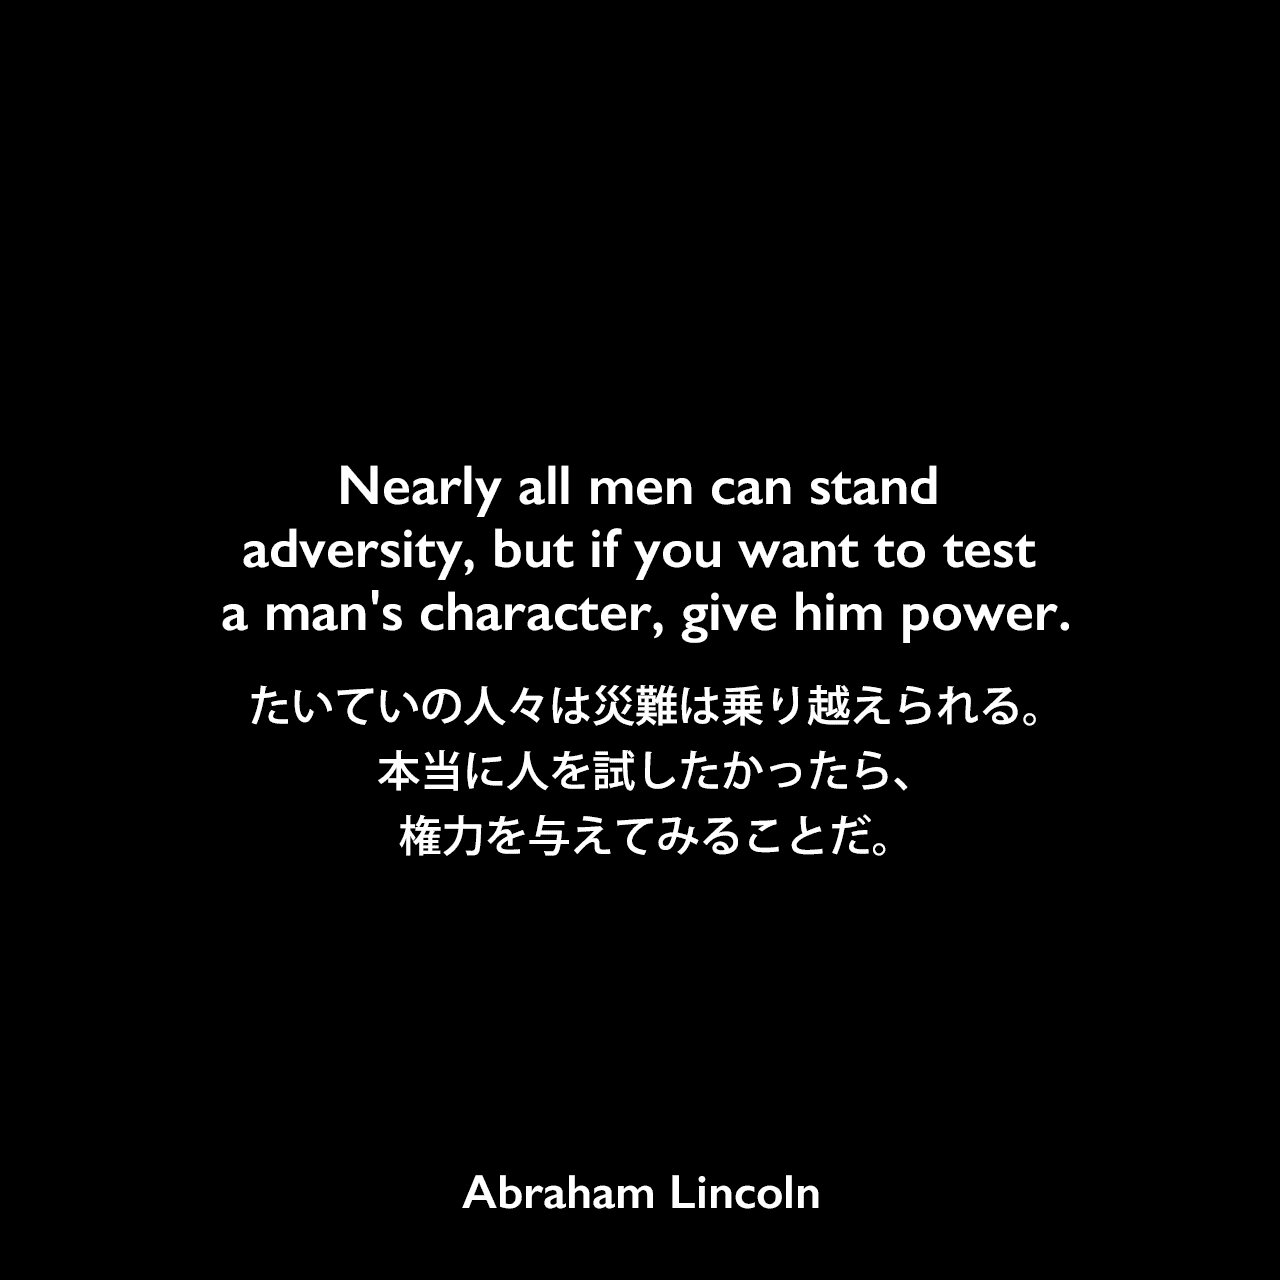 Nearly all men can stand adversity, but if you want to test a man's character, give him power.たいていの人々は災難は乗り越えられる。本当に人を試したかったら、権力を与えてみることだ。Abraham Lincoln